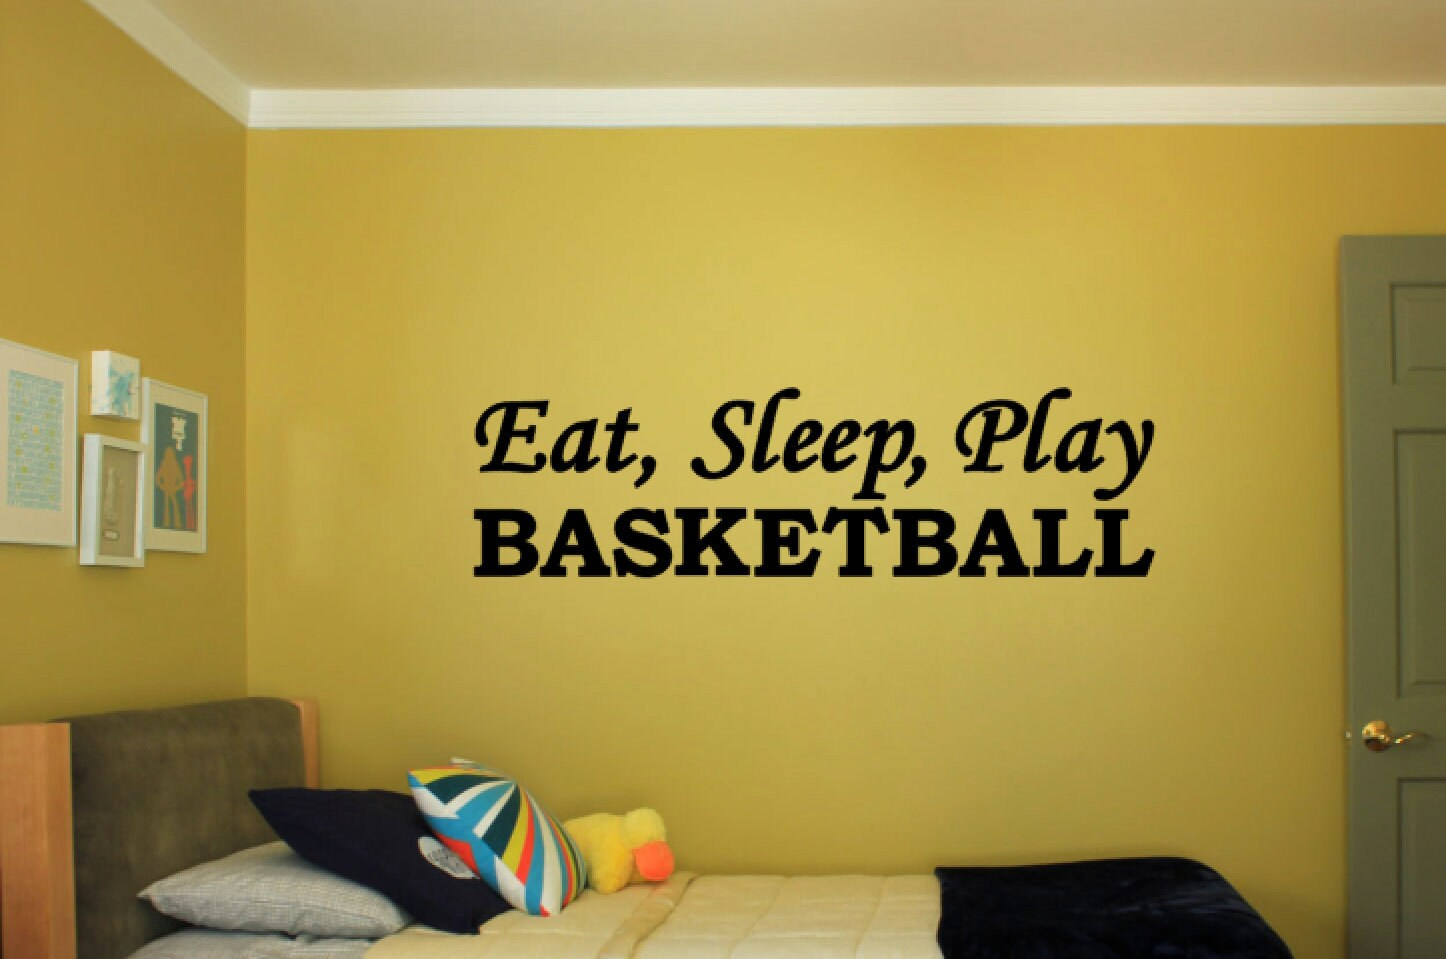 Eat, Sleep, Play BASKETBALL - Vinyl Decal Vinyl Wall Art. Boys or ...